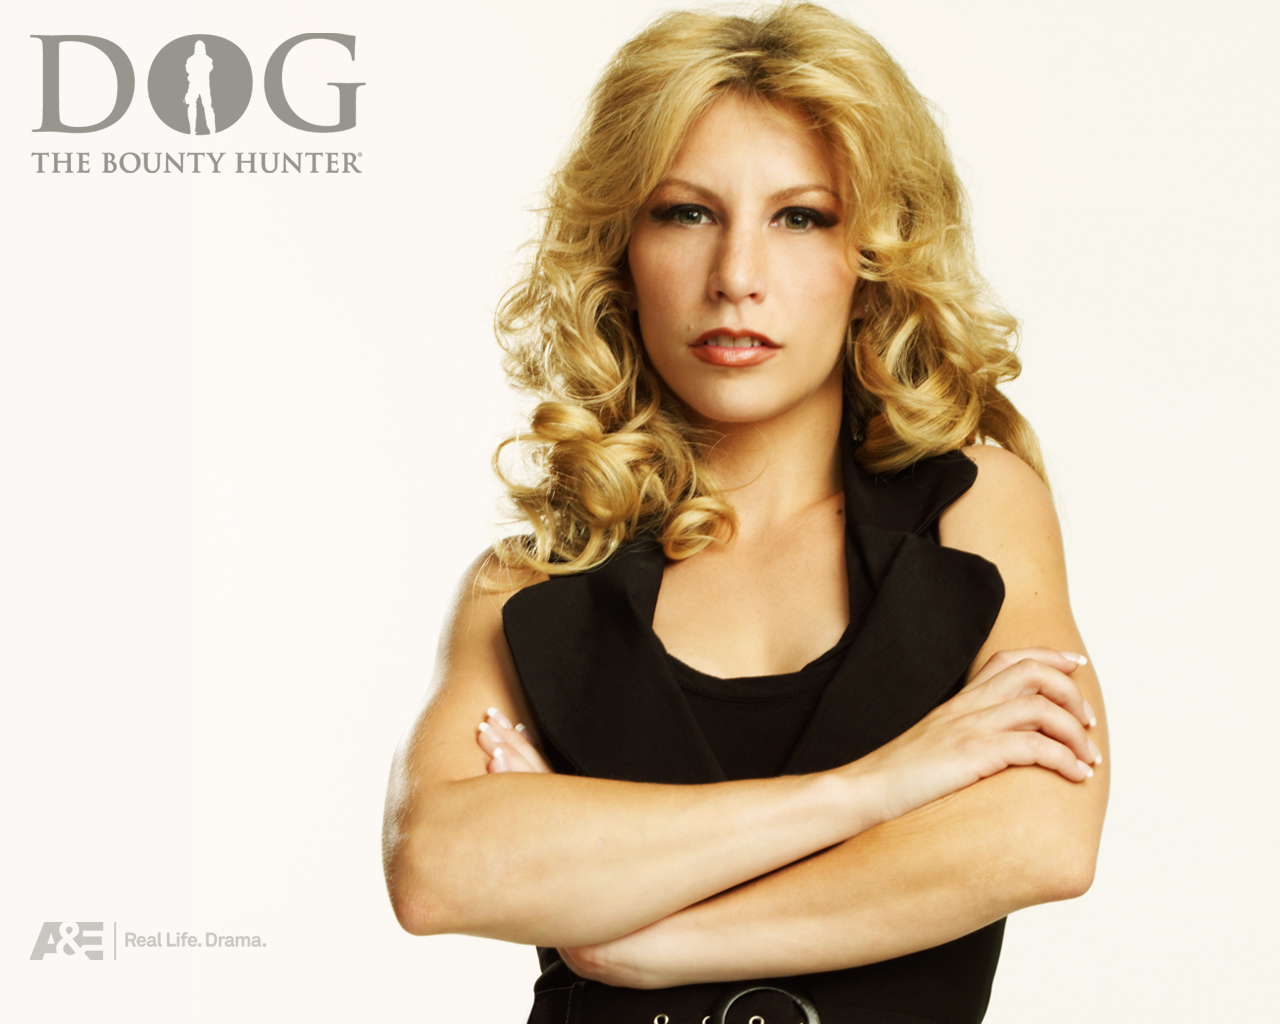 Free Download Dog The Bounty Hunter Lyssa 1280x1024 For Your